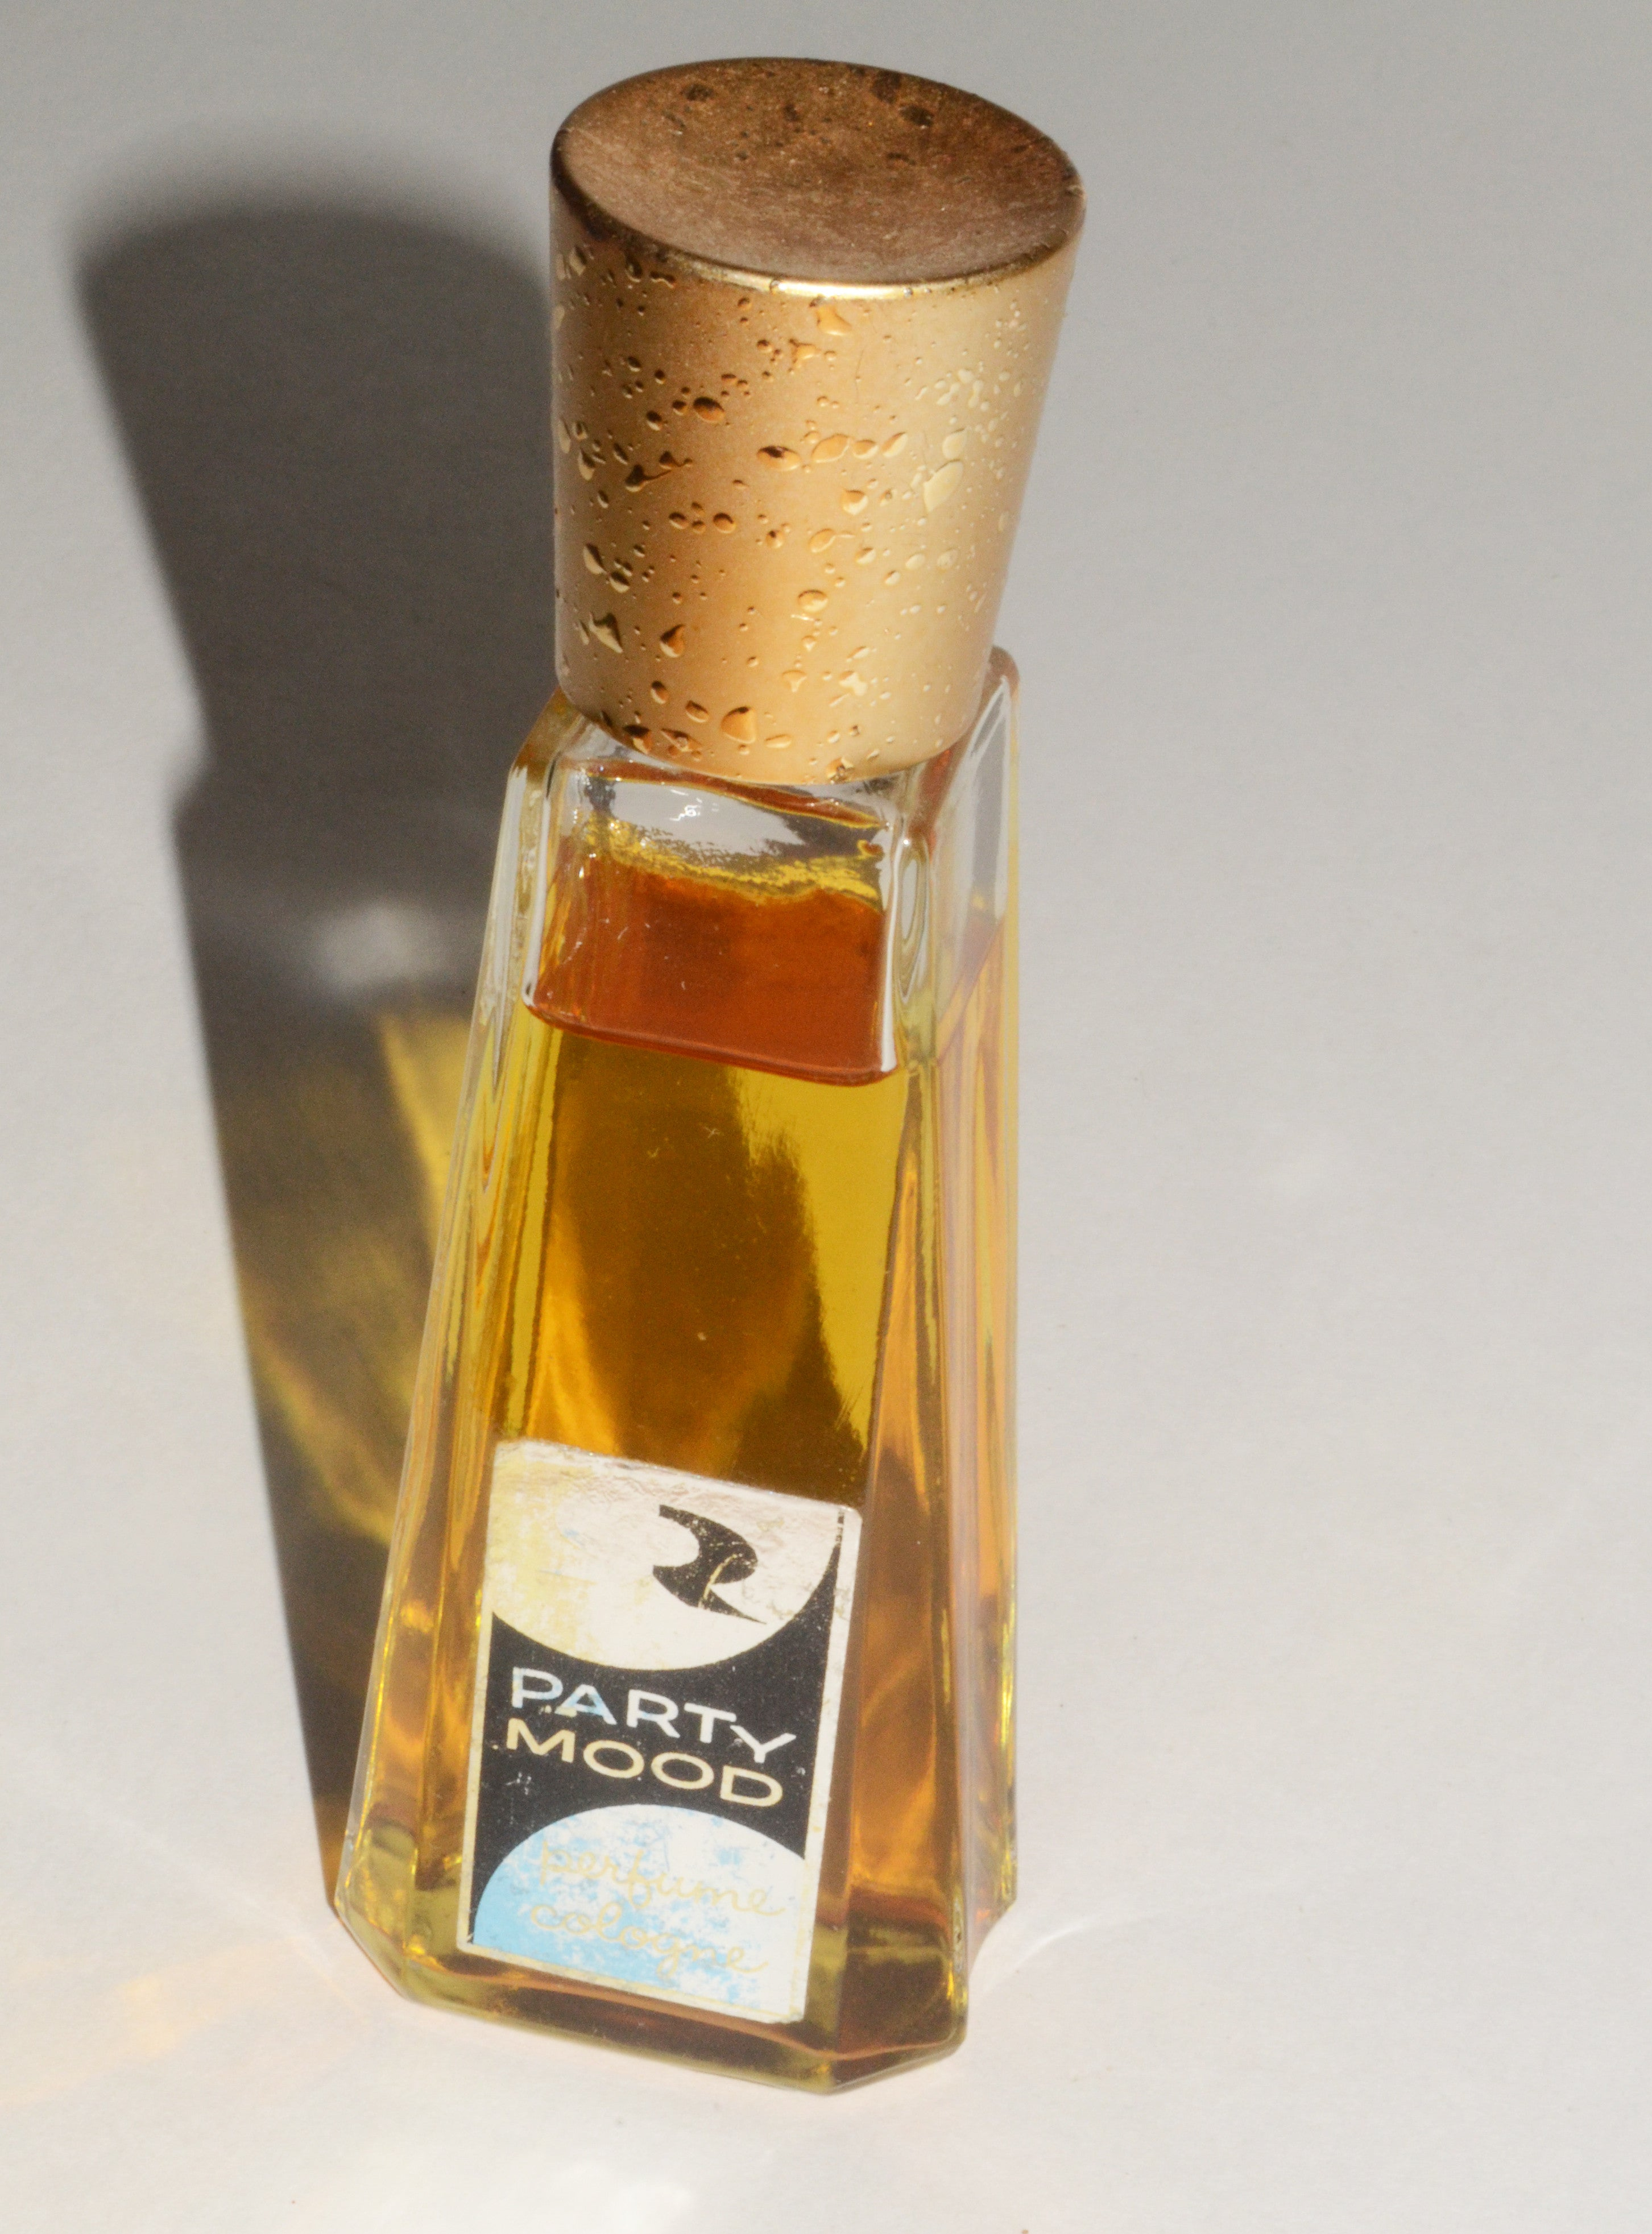 Vintage Party Mood Perfume By Rawleigh